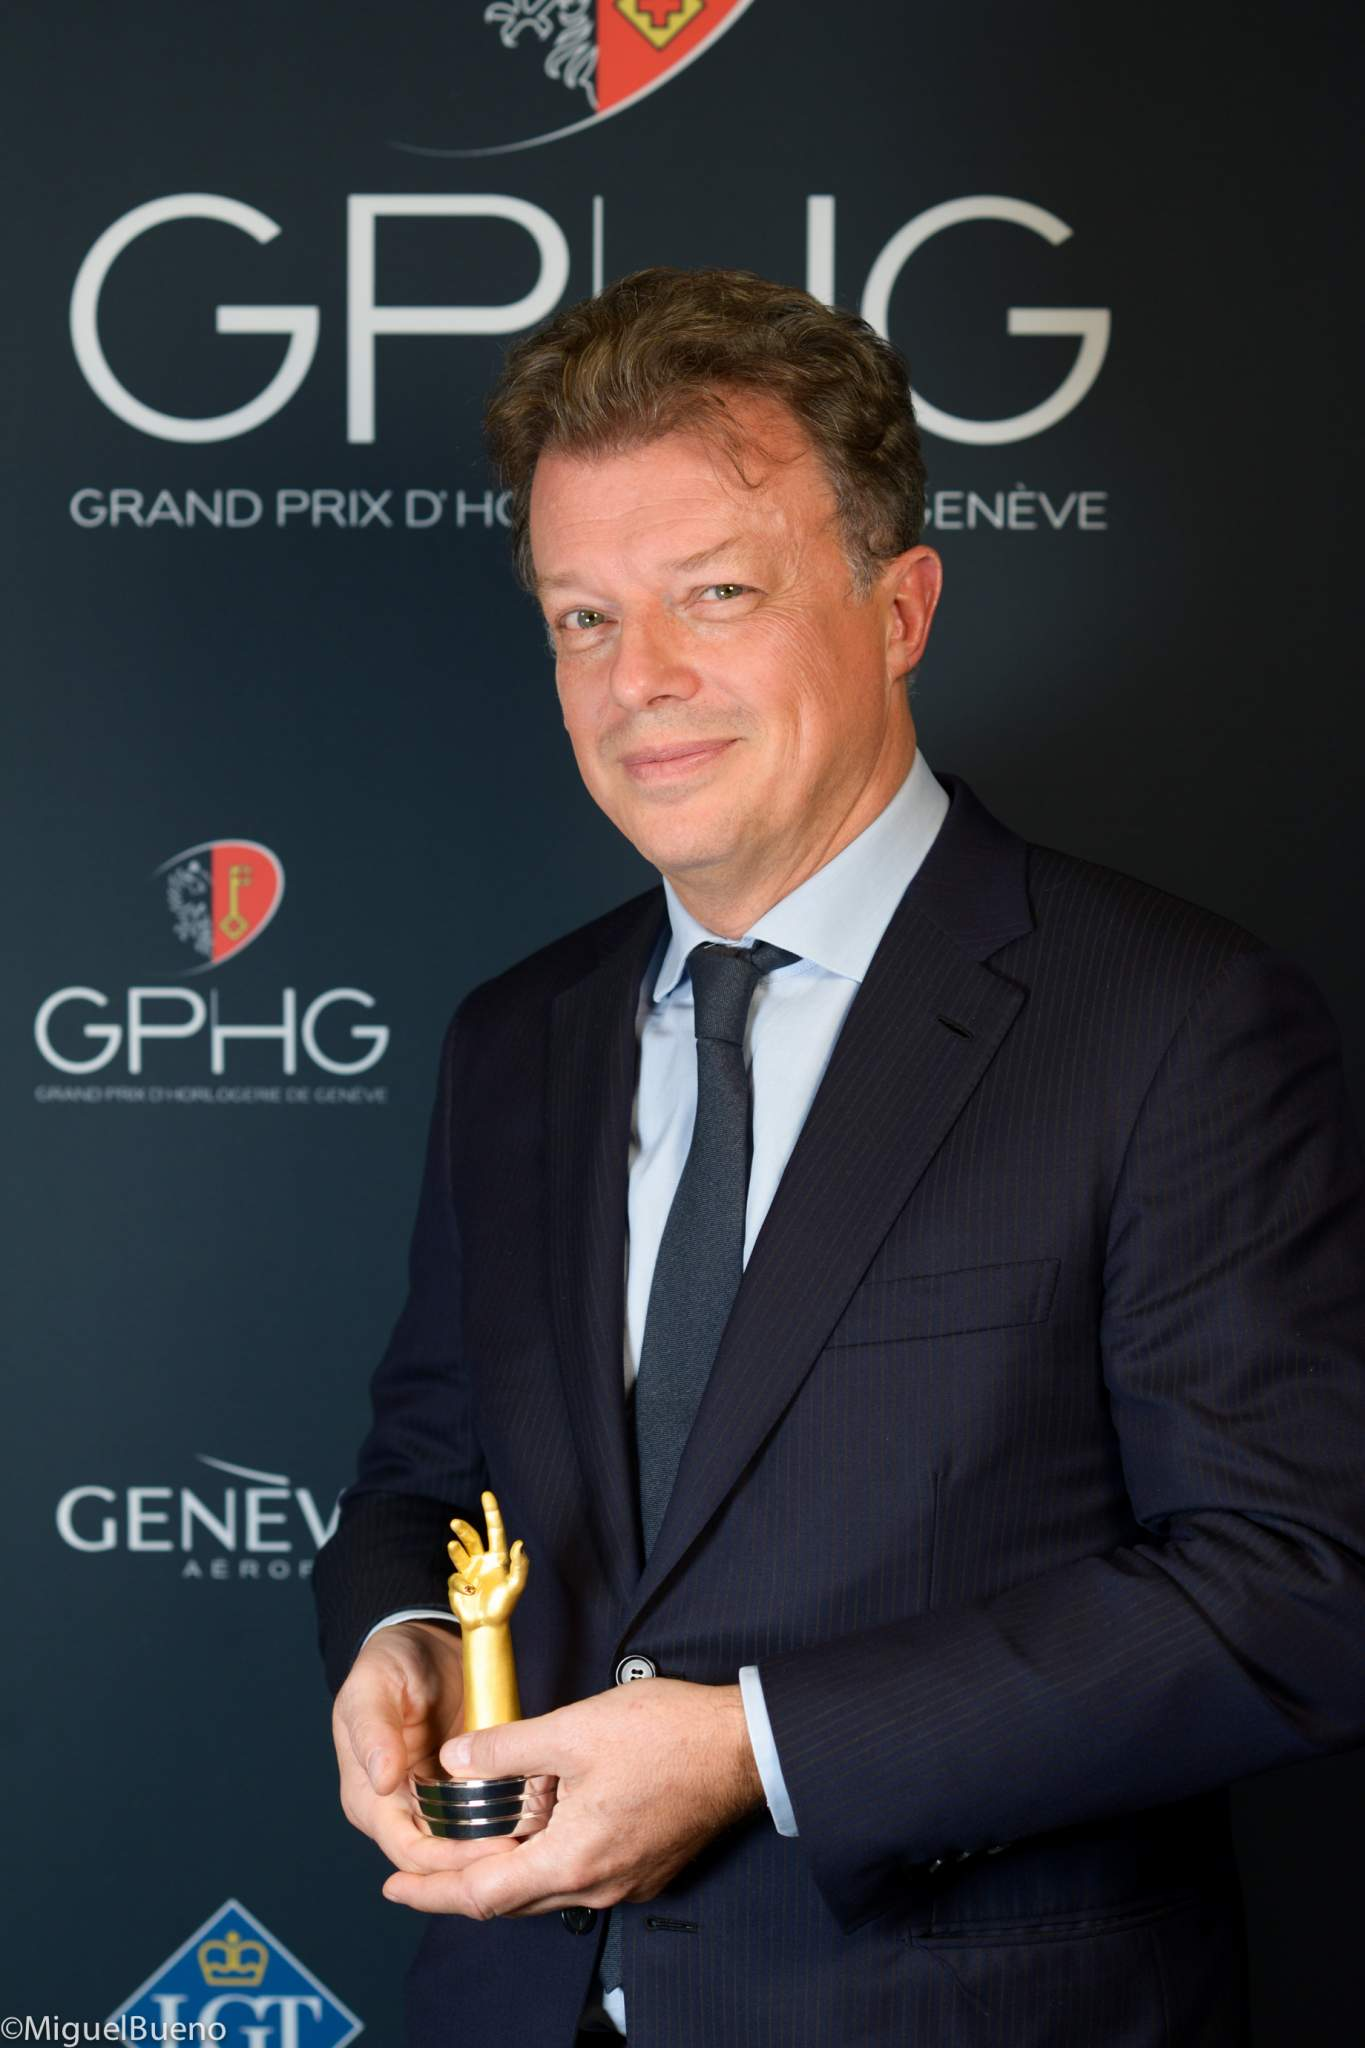 Global Head of Watches and Fine Jewelry Business Development at Chanel, winner of the Ladies' Watch Prize 2019